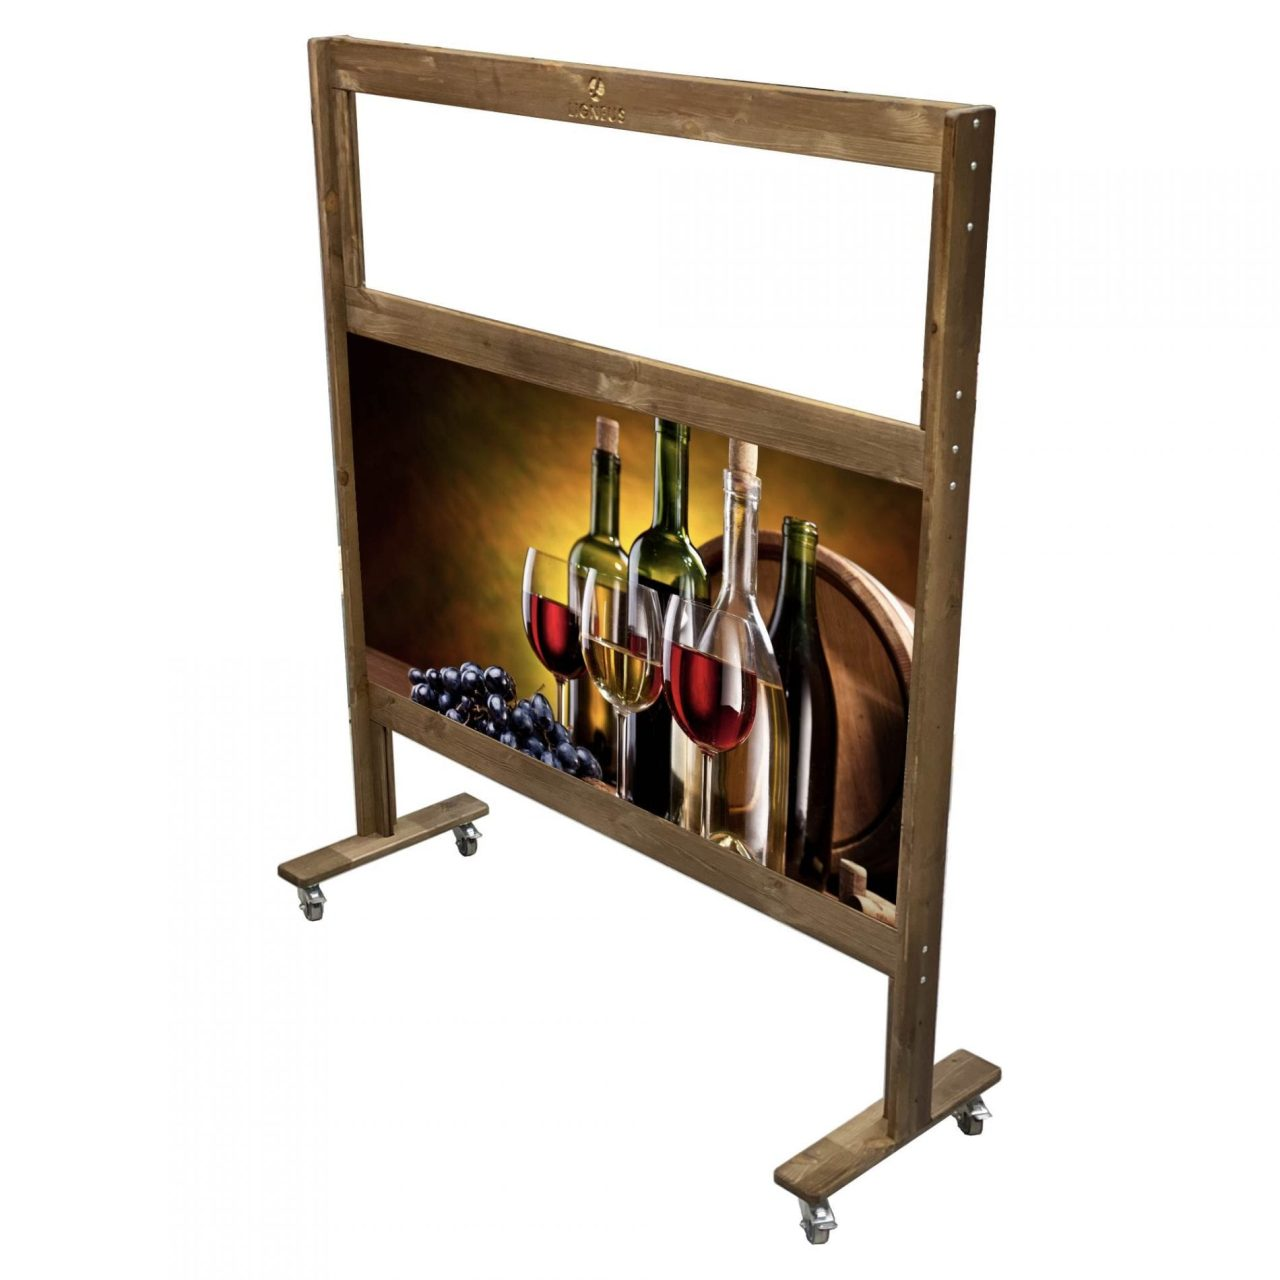 Solid Pine Frame Room Divider Partition Screen with mixed media and see thru panel 1200x400x1400 with wine